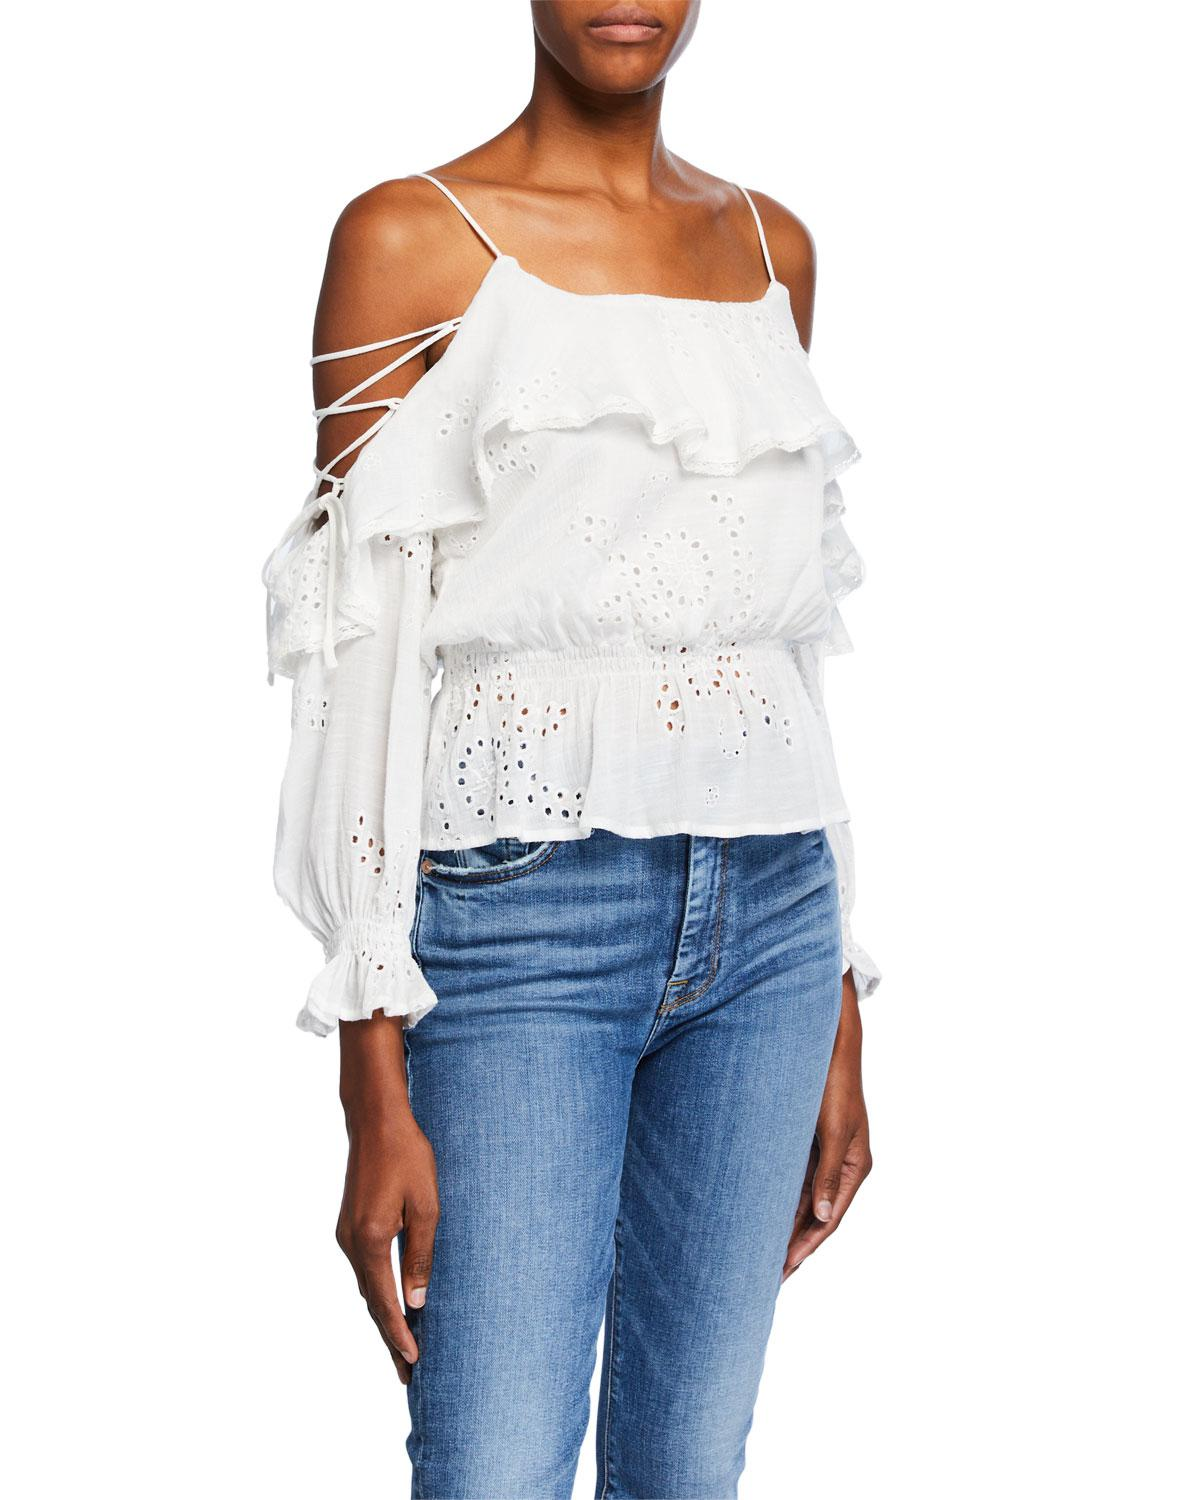 90a653ec1cbc7 Lyst - Astr Kennedy Cold Shoulder Eyelet Top in White